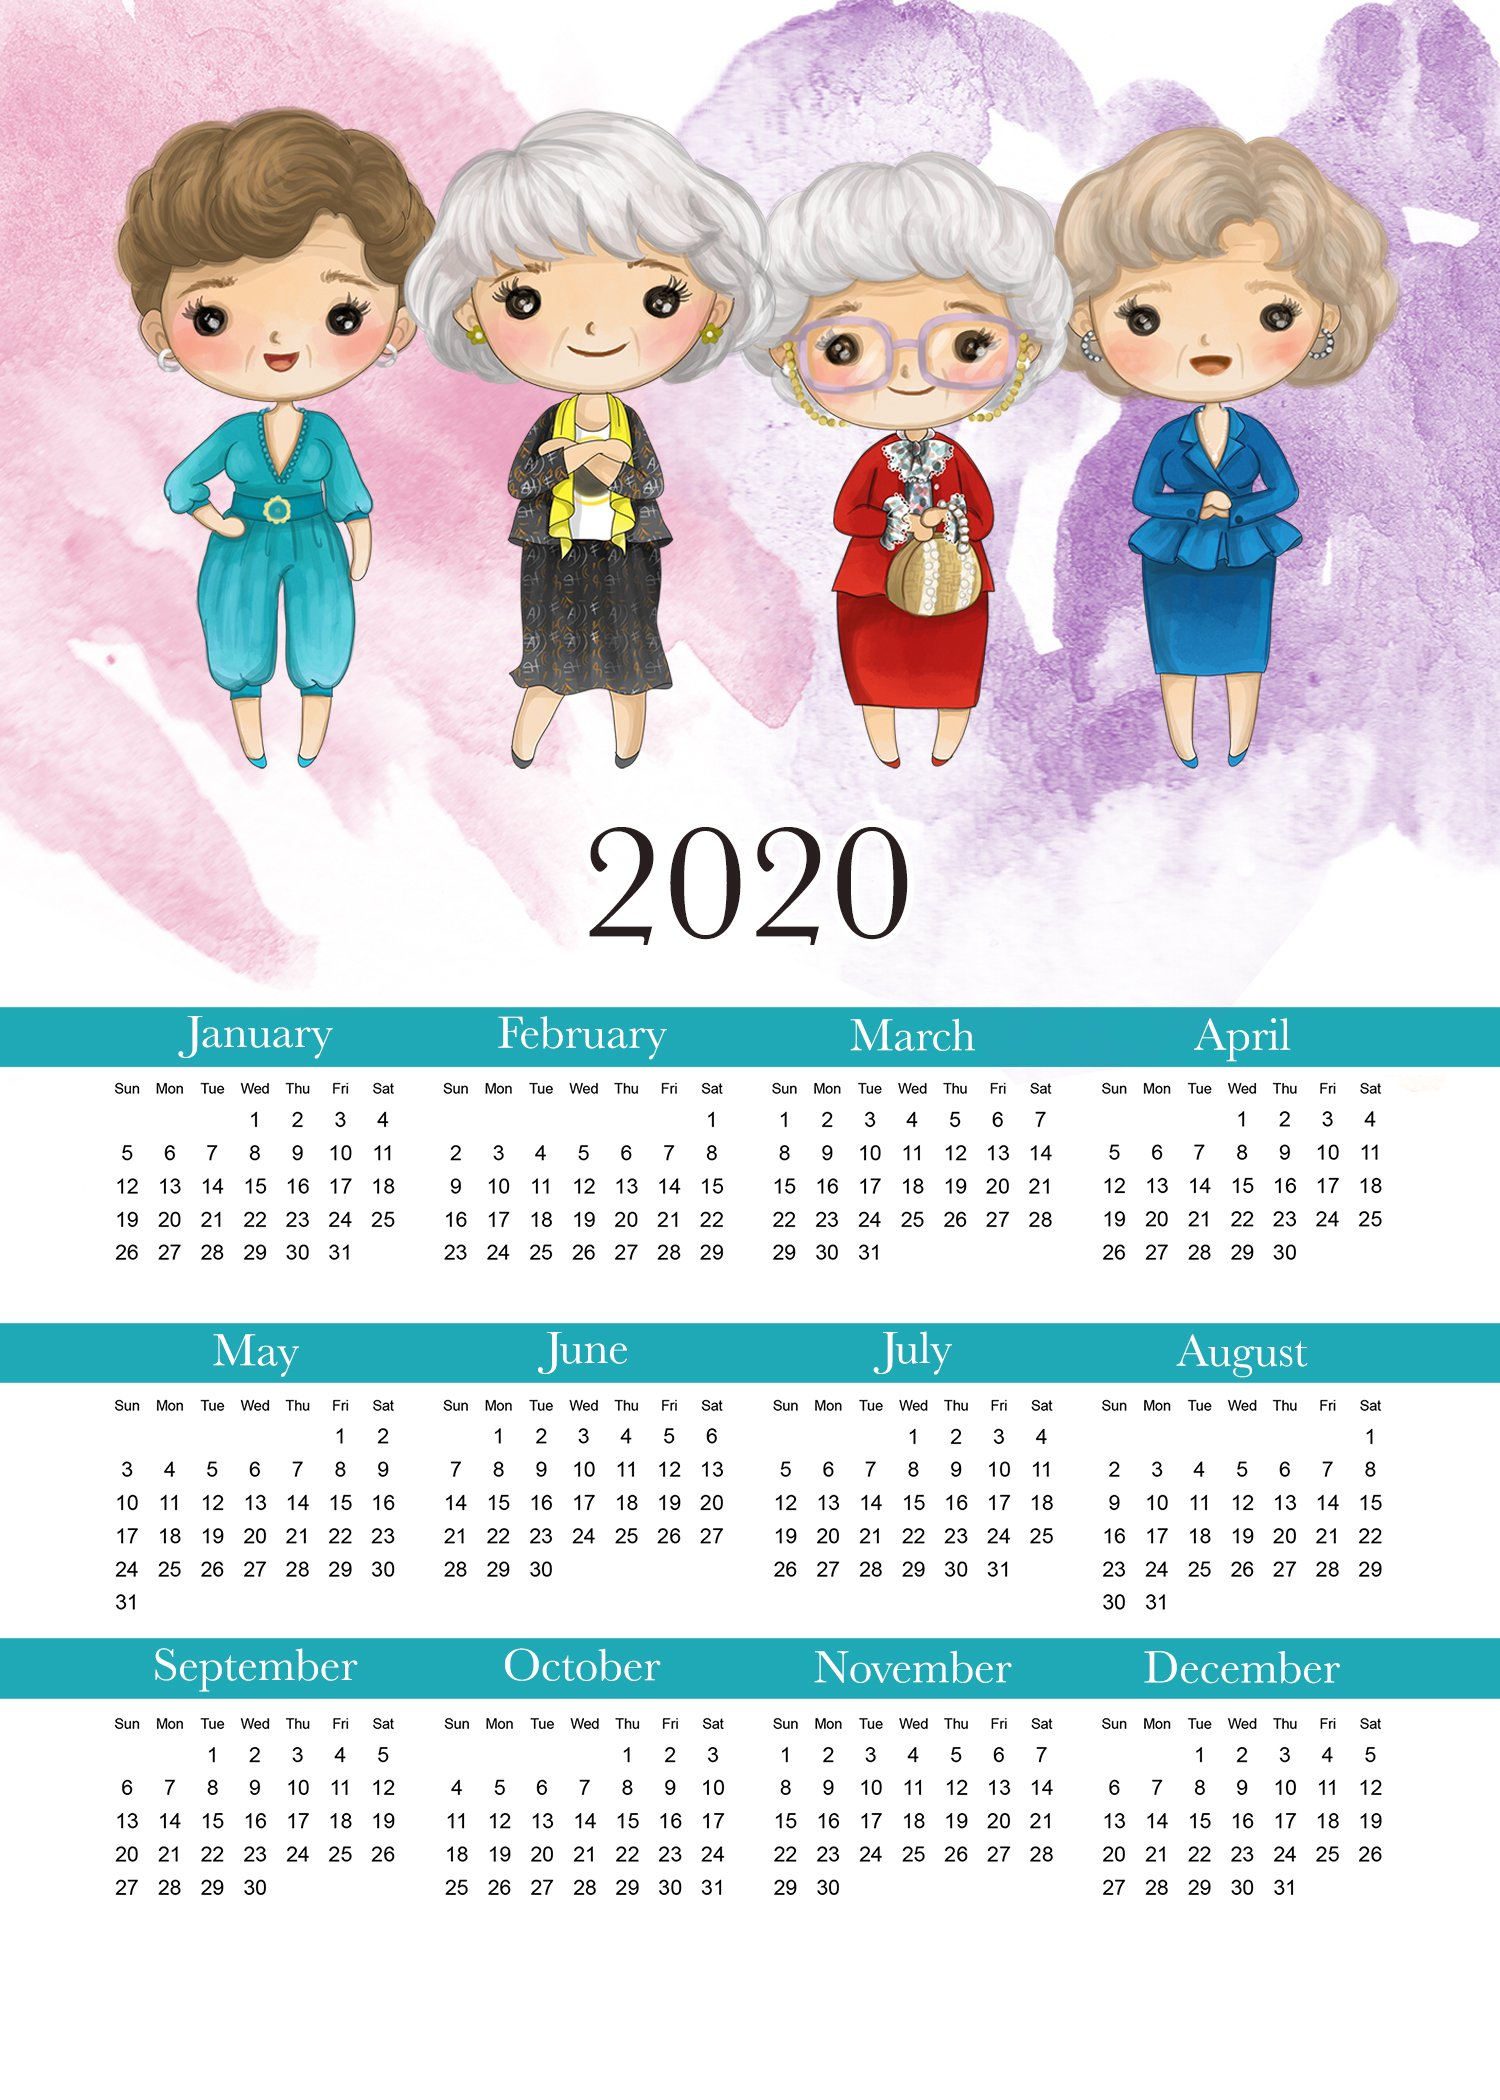 Free Printable 2020 Golden Girls Calendar - The Cottage Market Free 2020 Checkbook Size Calendar Same Size As A Check For The Year